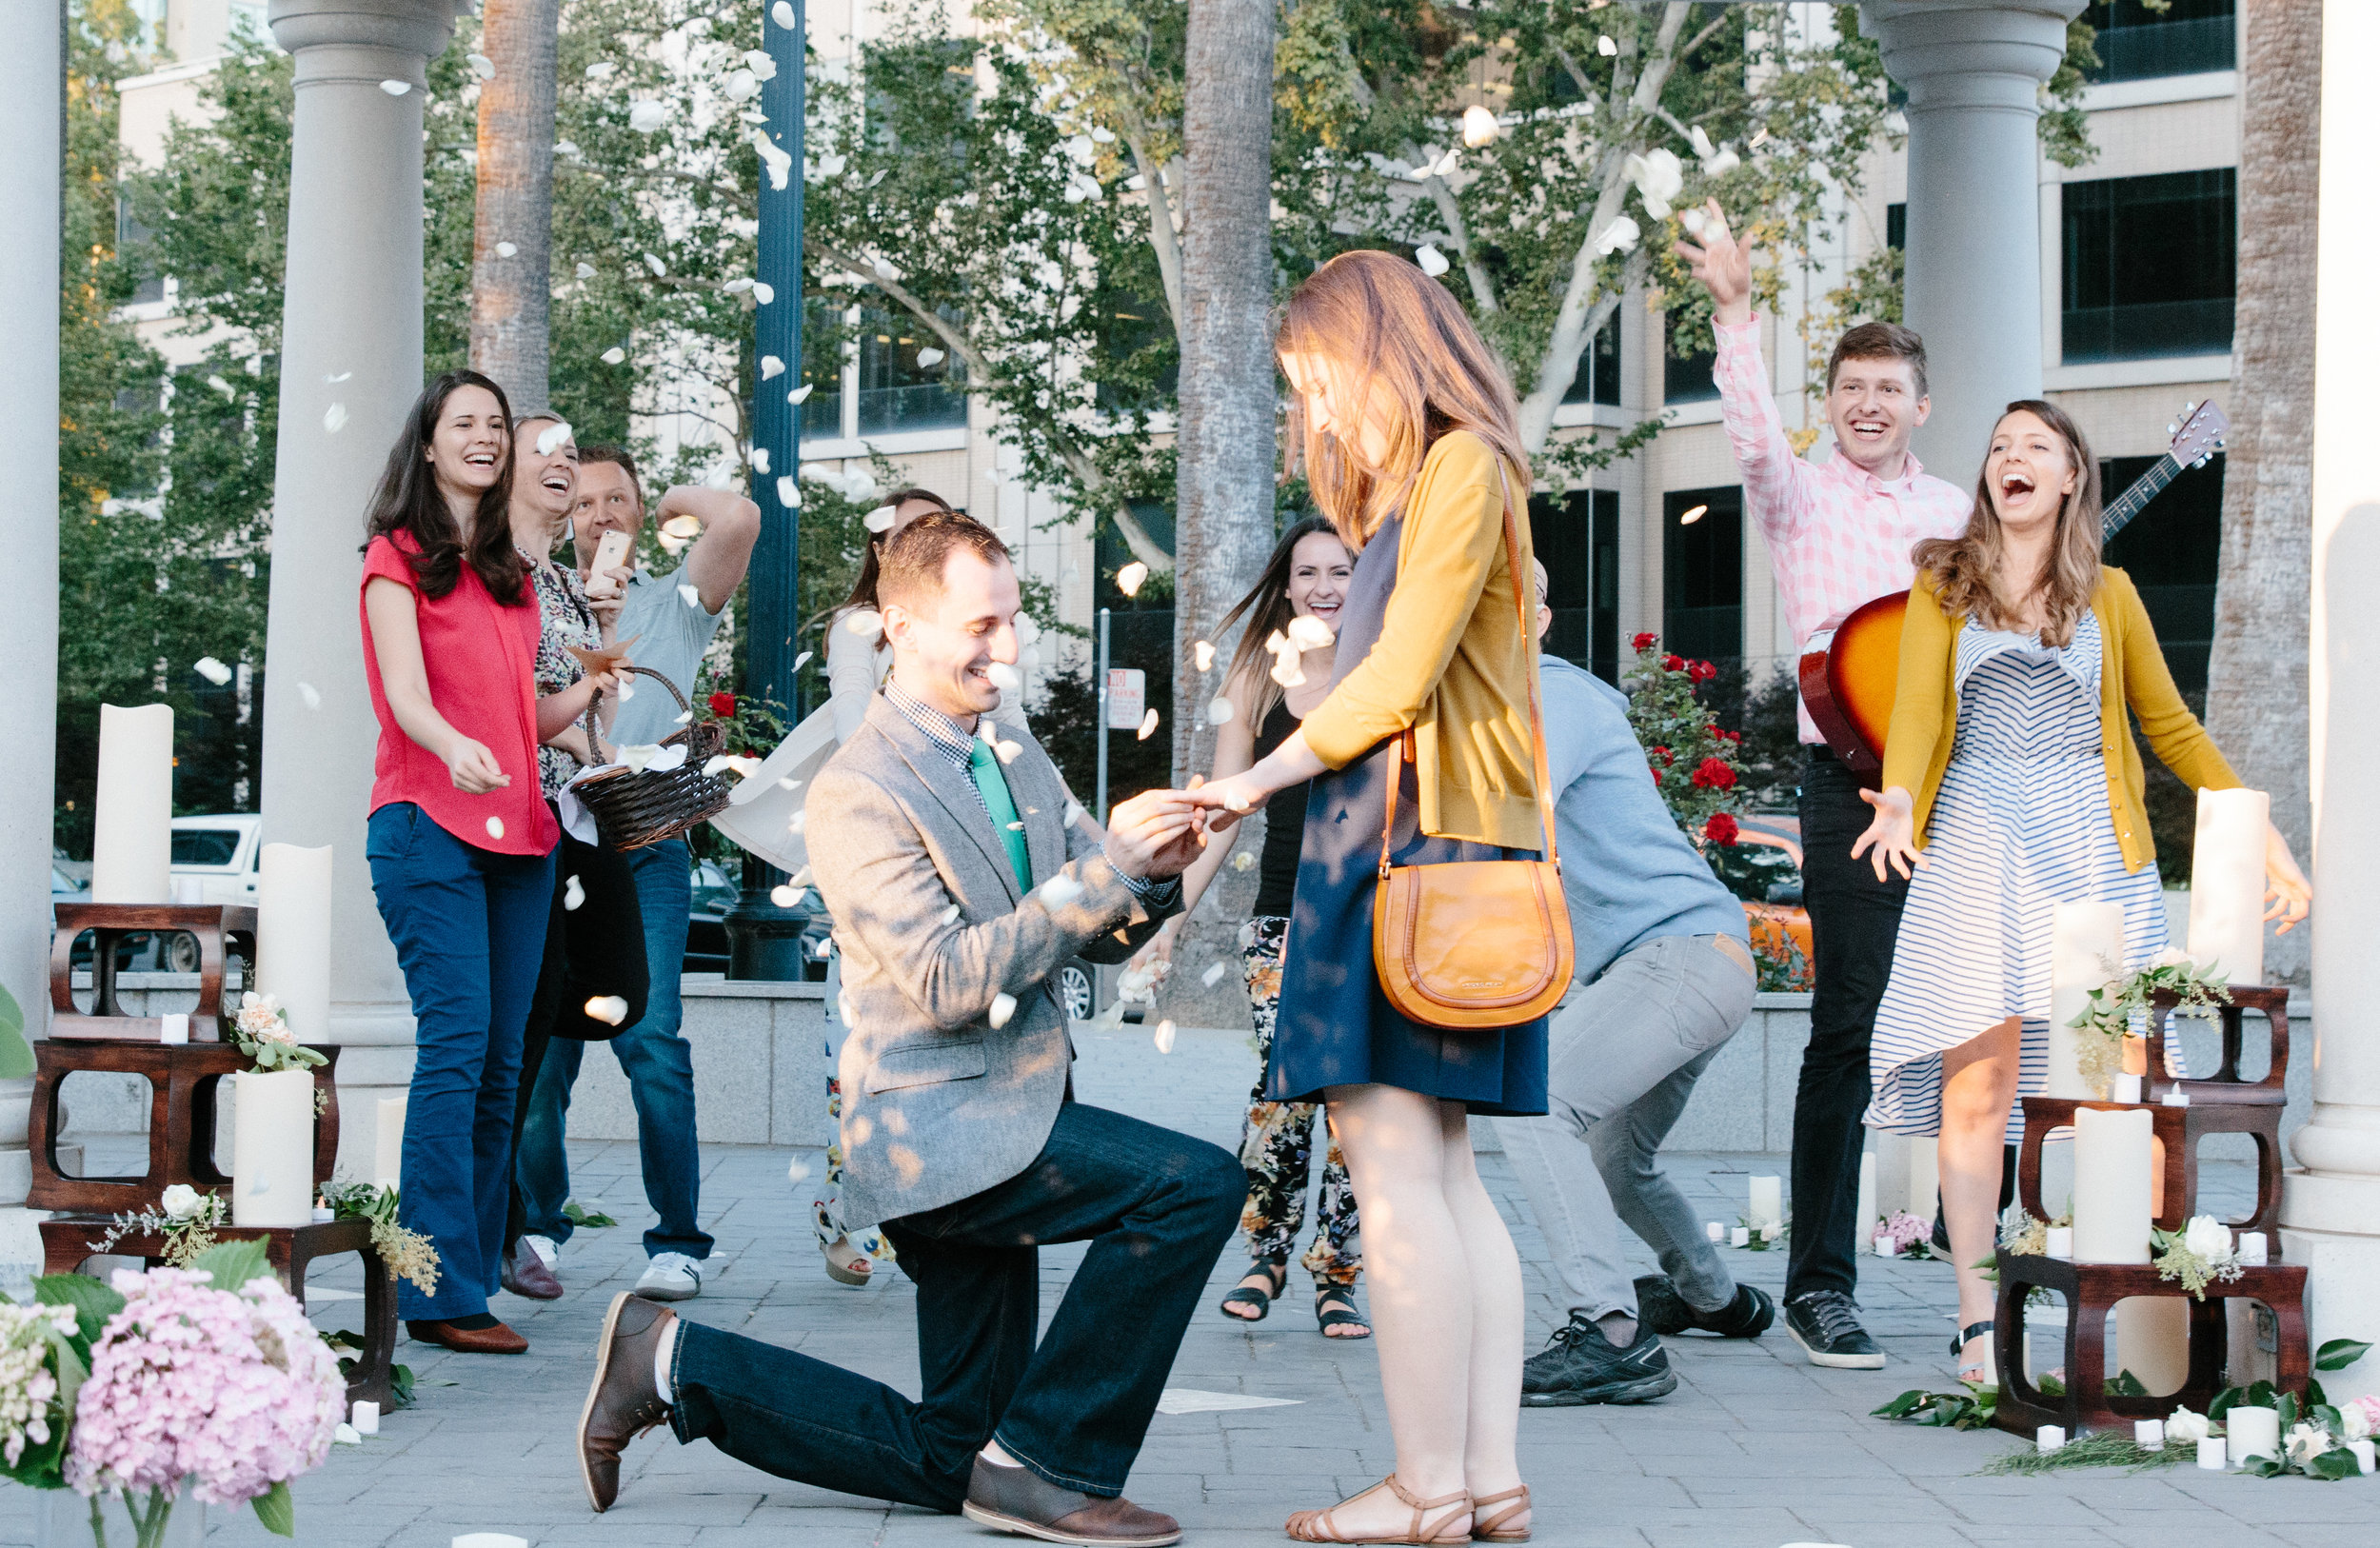 """Friends & family clapped, cheered, & tossed rose petals over the sweet couple as the future bride yelled """" YES !"""""""